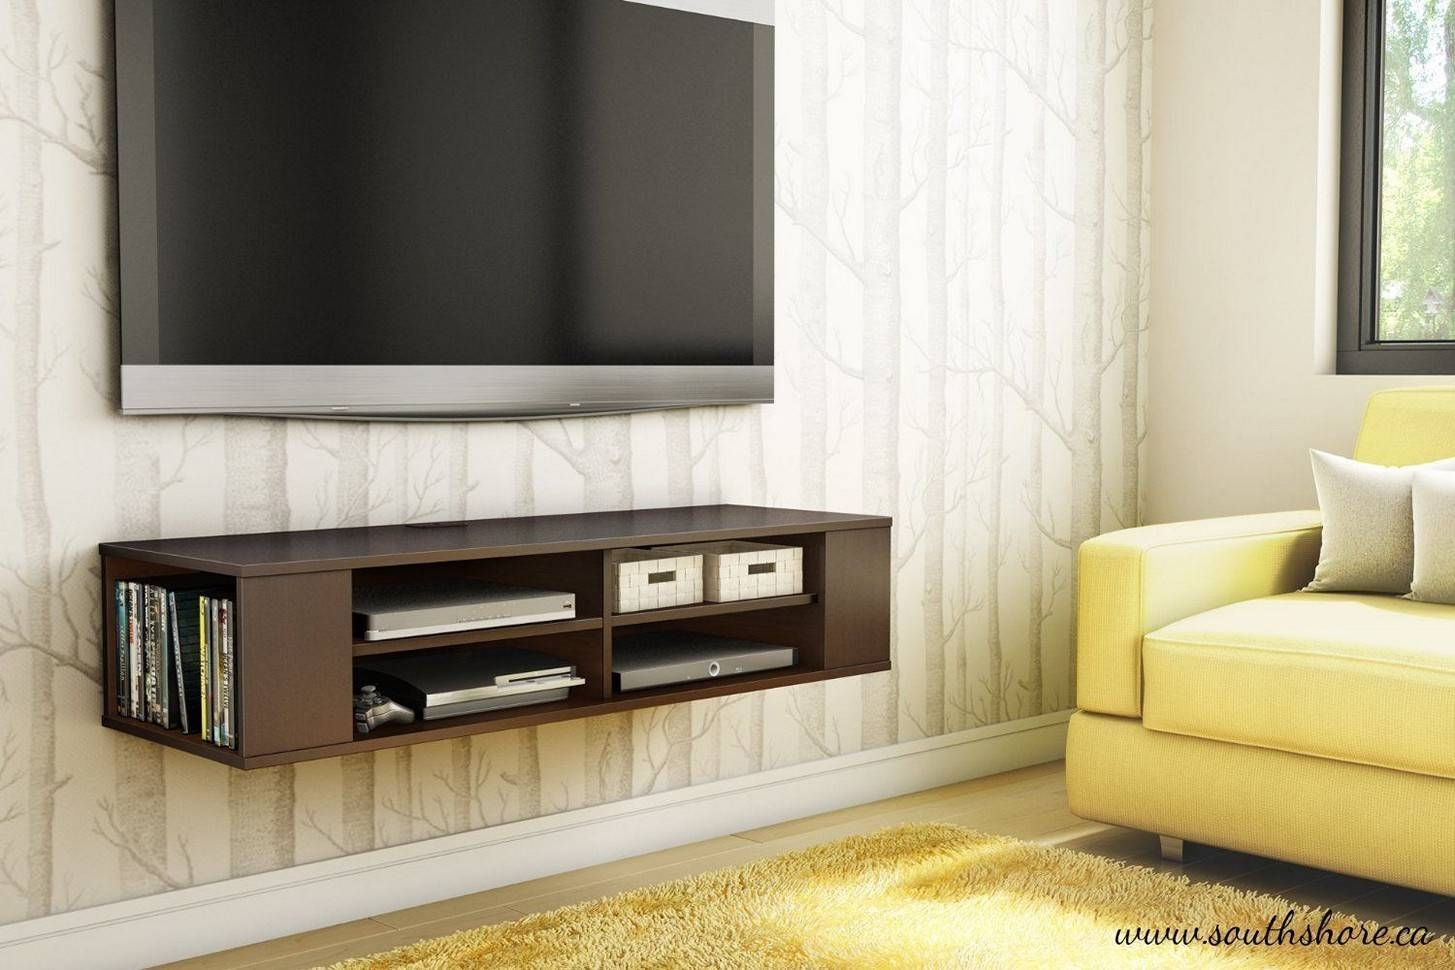 Diy Tv Stand Endless Choices For Your Room Interior Pertaining To Floating Tv Cabinet (View 8 of 15)